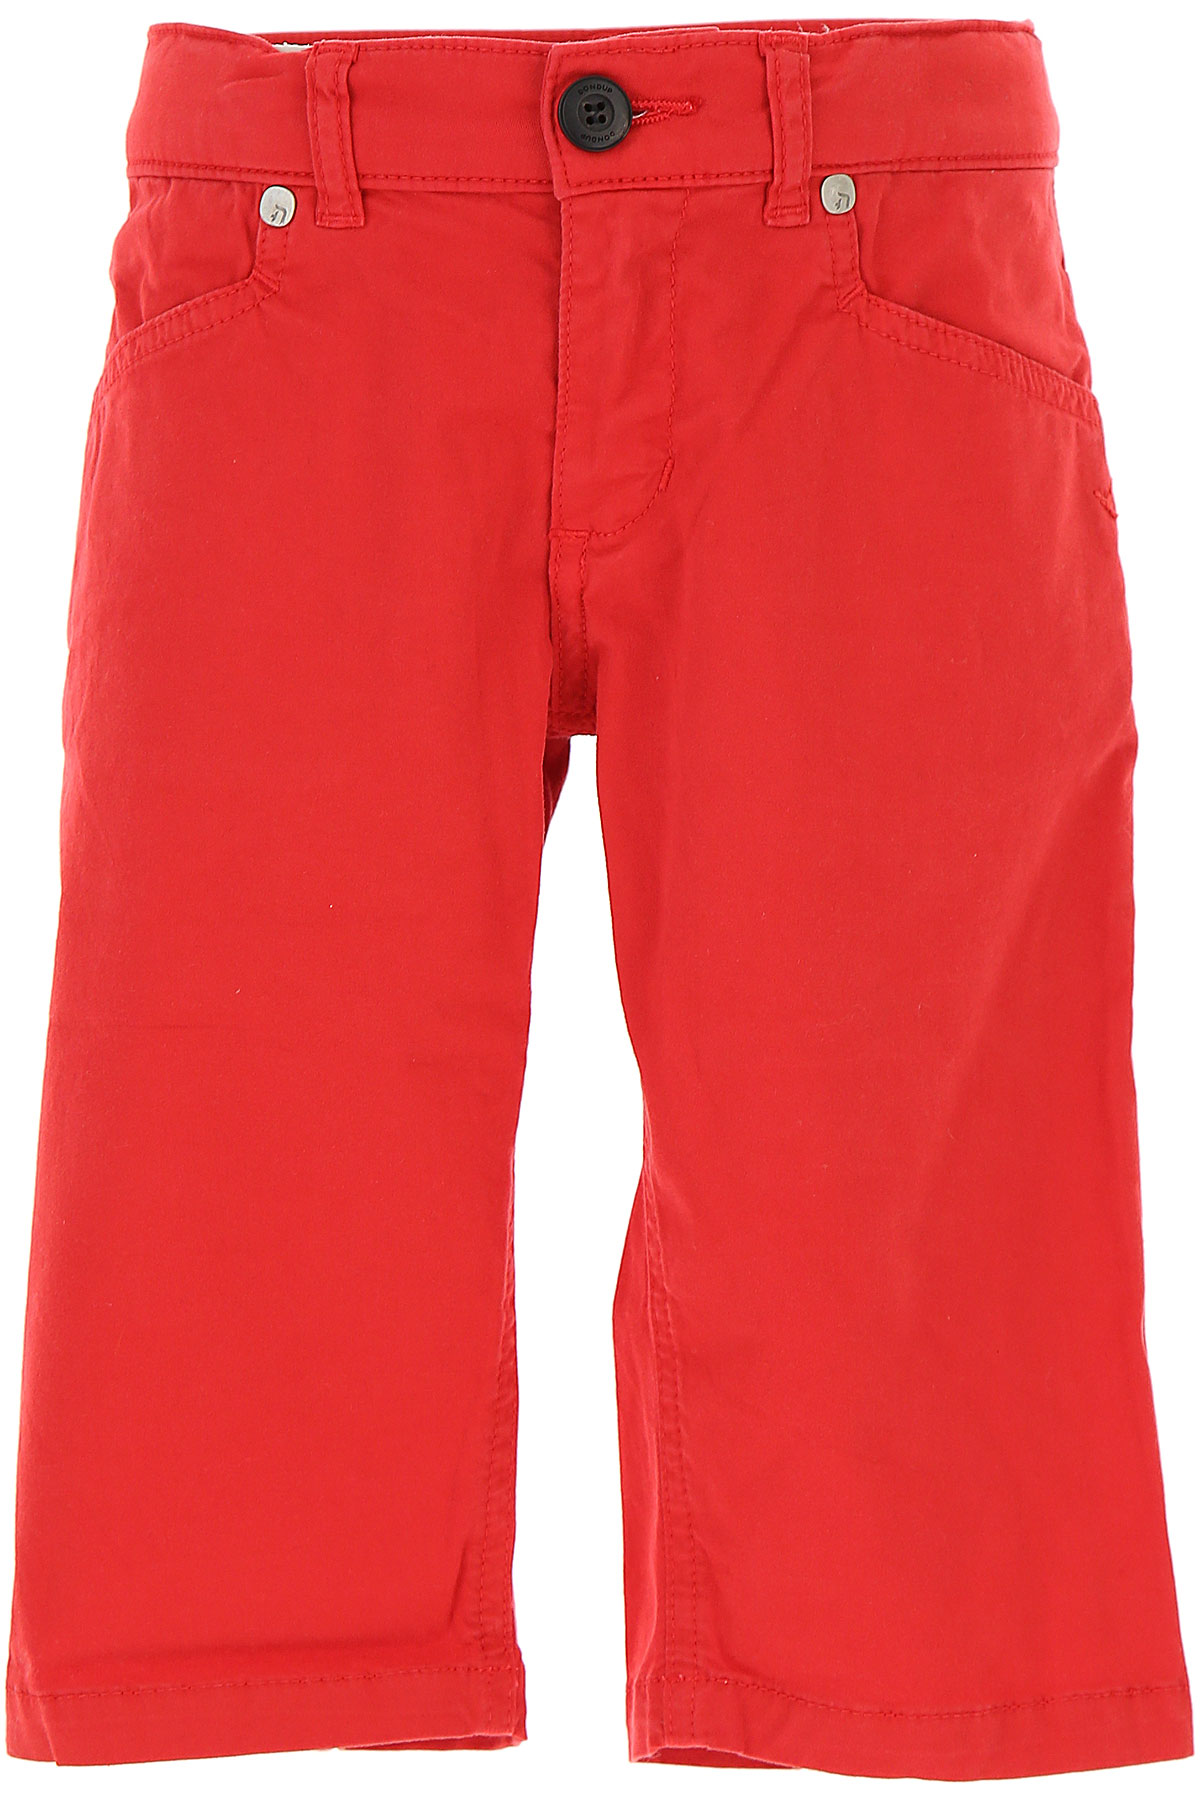 Image of Dondup Kids Shorts for Boys On Sale in Outlet, Red, Cotton, 2017, 10Y 8Y